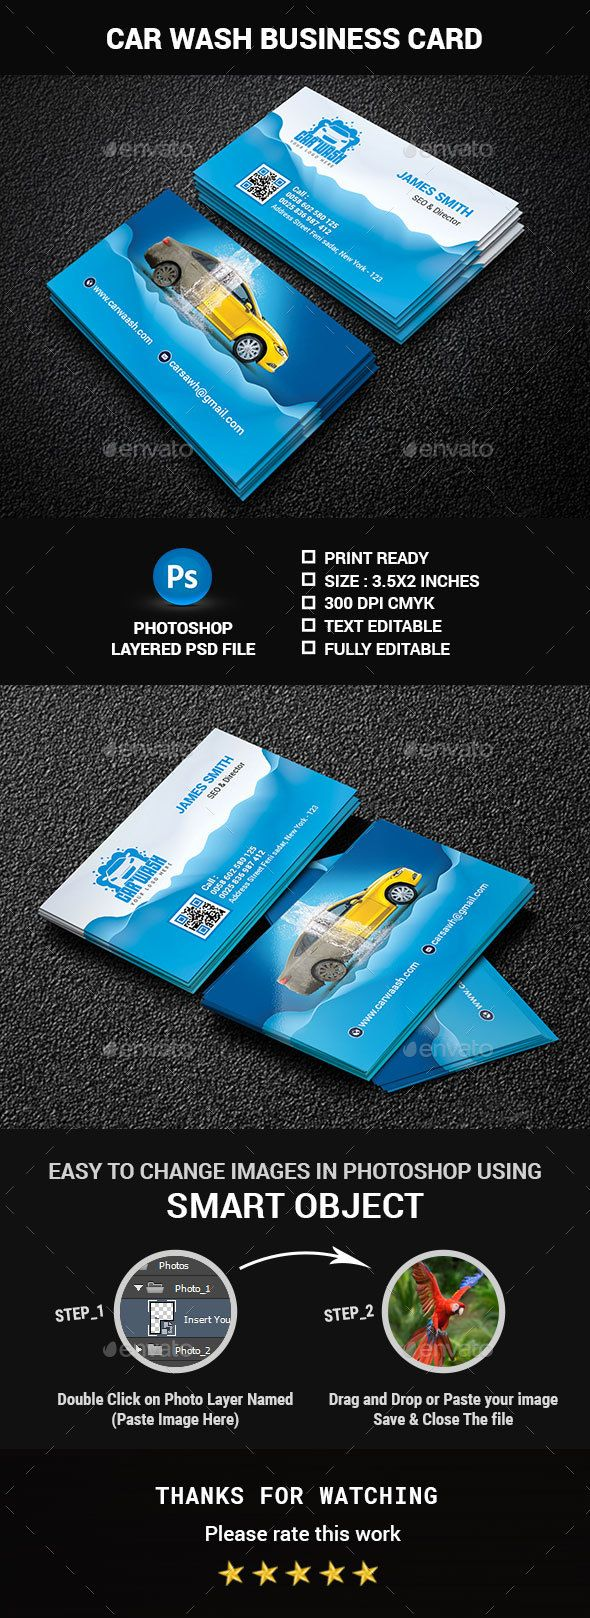 Car wash business card pinterest car wash business car wash and car wash business card creative business cards download here httpsgraphicriveritemcar wash business card 19968812refclassicdesignp colourmoves